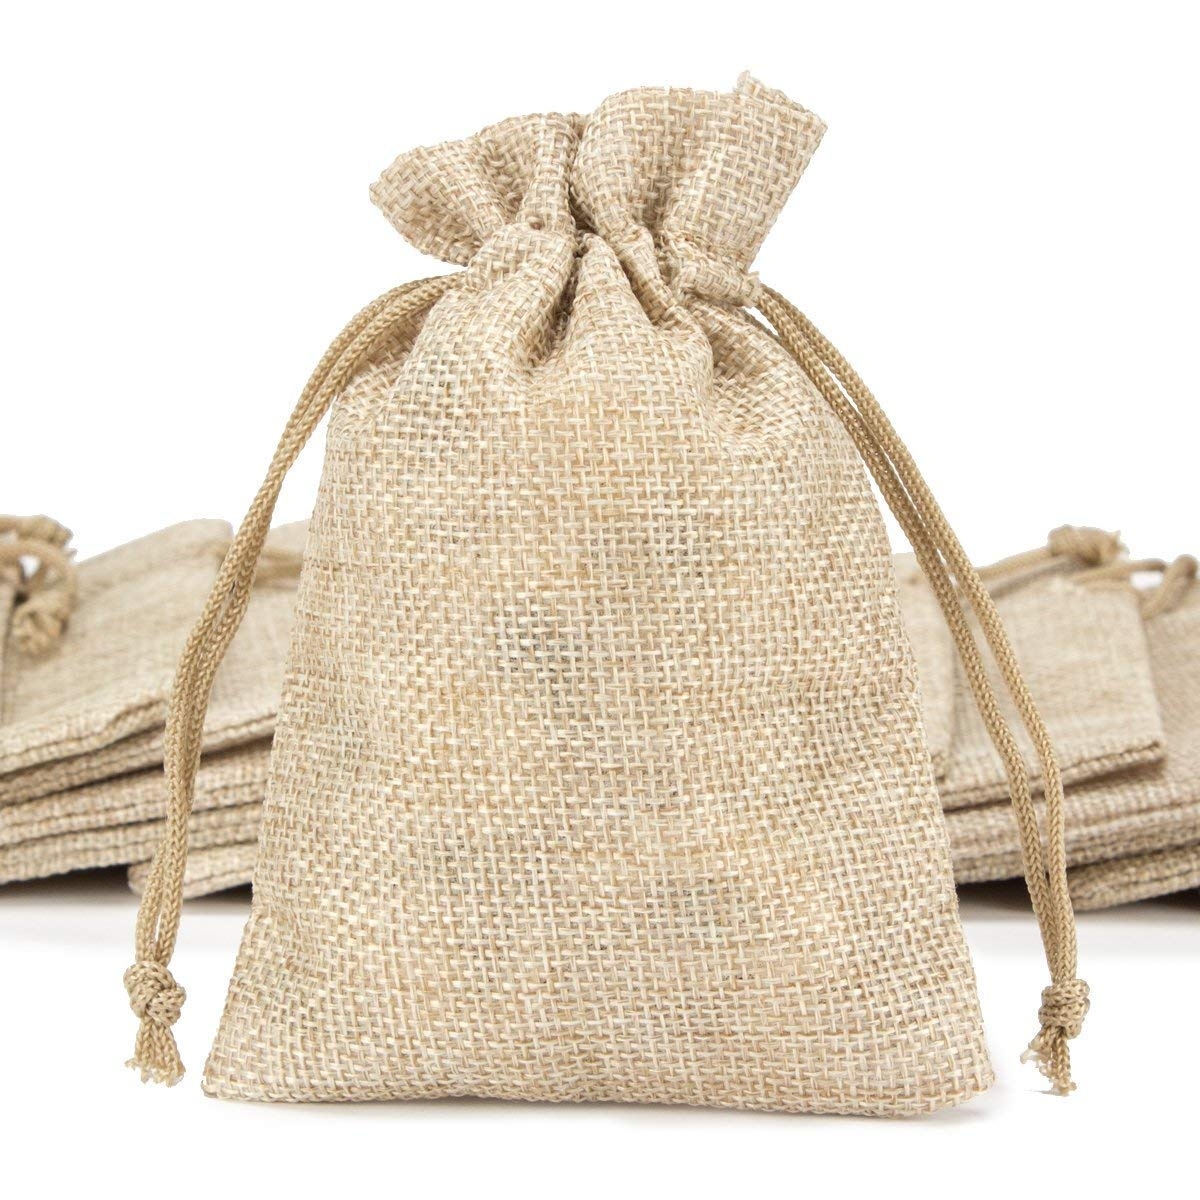 ANPHSIN 50 Pieces Burlap Bags with Drawstring, 5.43x3.74 inch Burlap Gift Bag Jewelry Pouches for Wedding Favors, Party, DIY Craft and Christmas